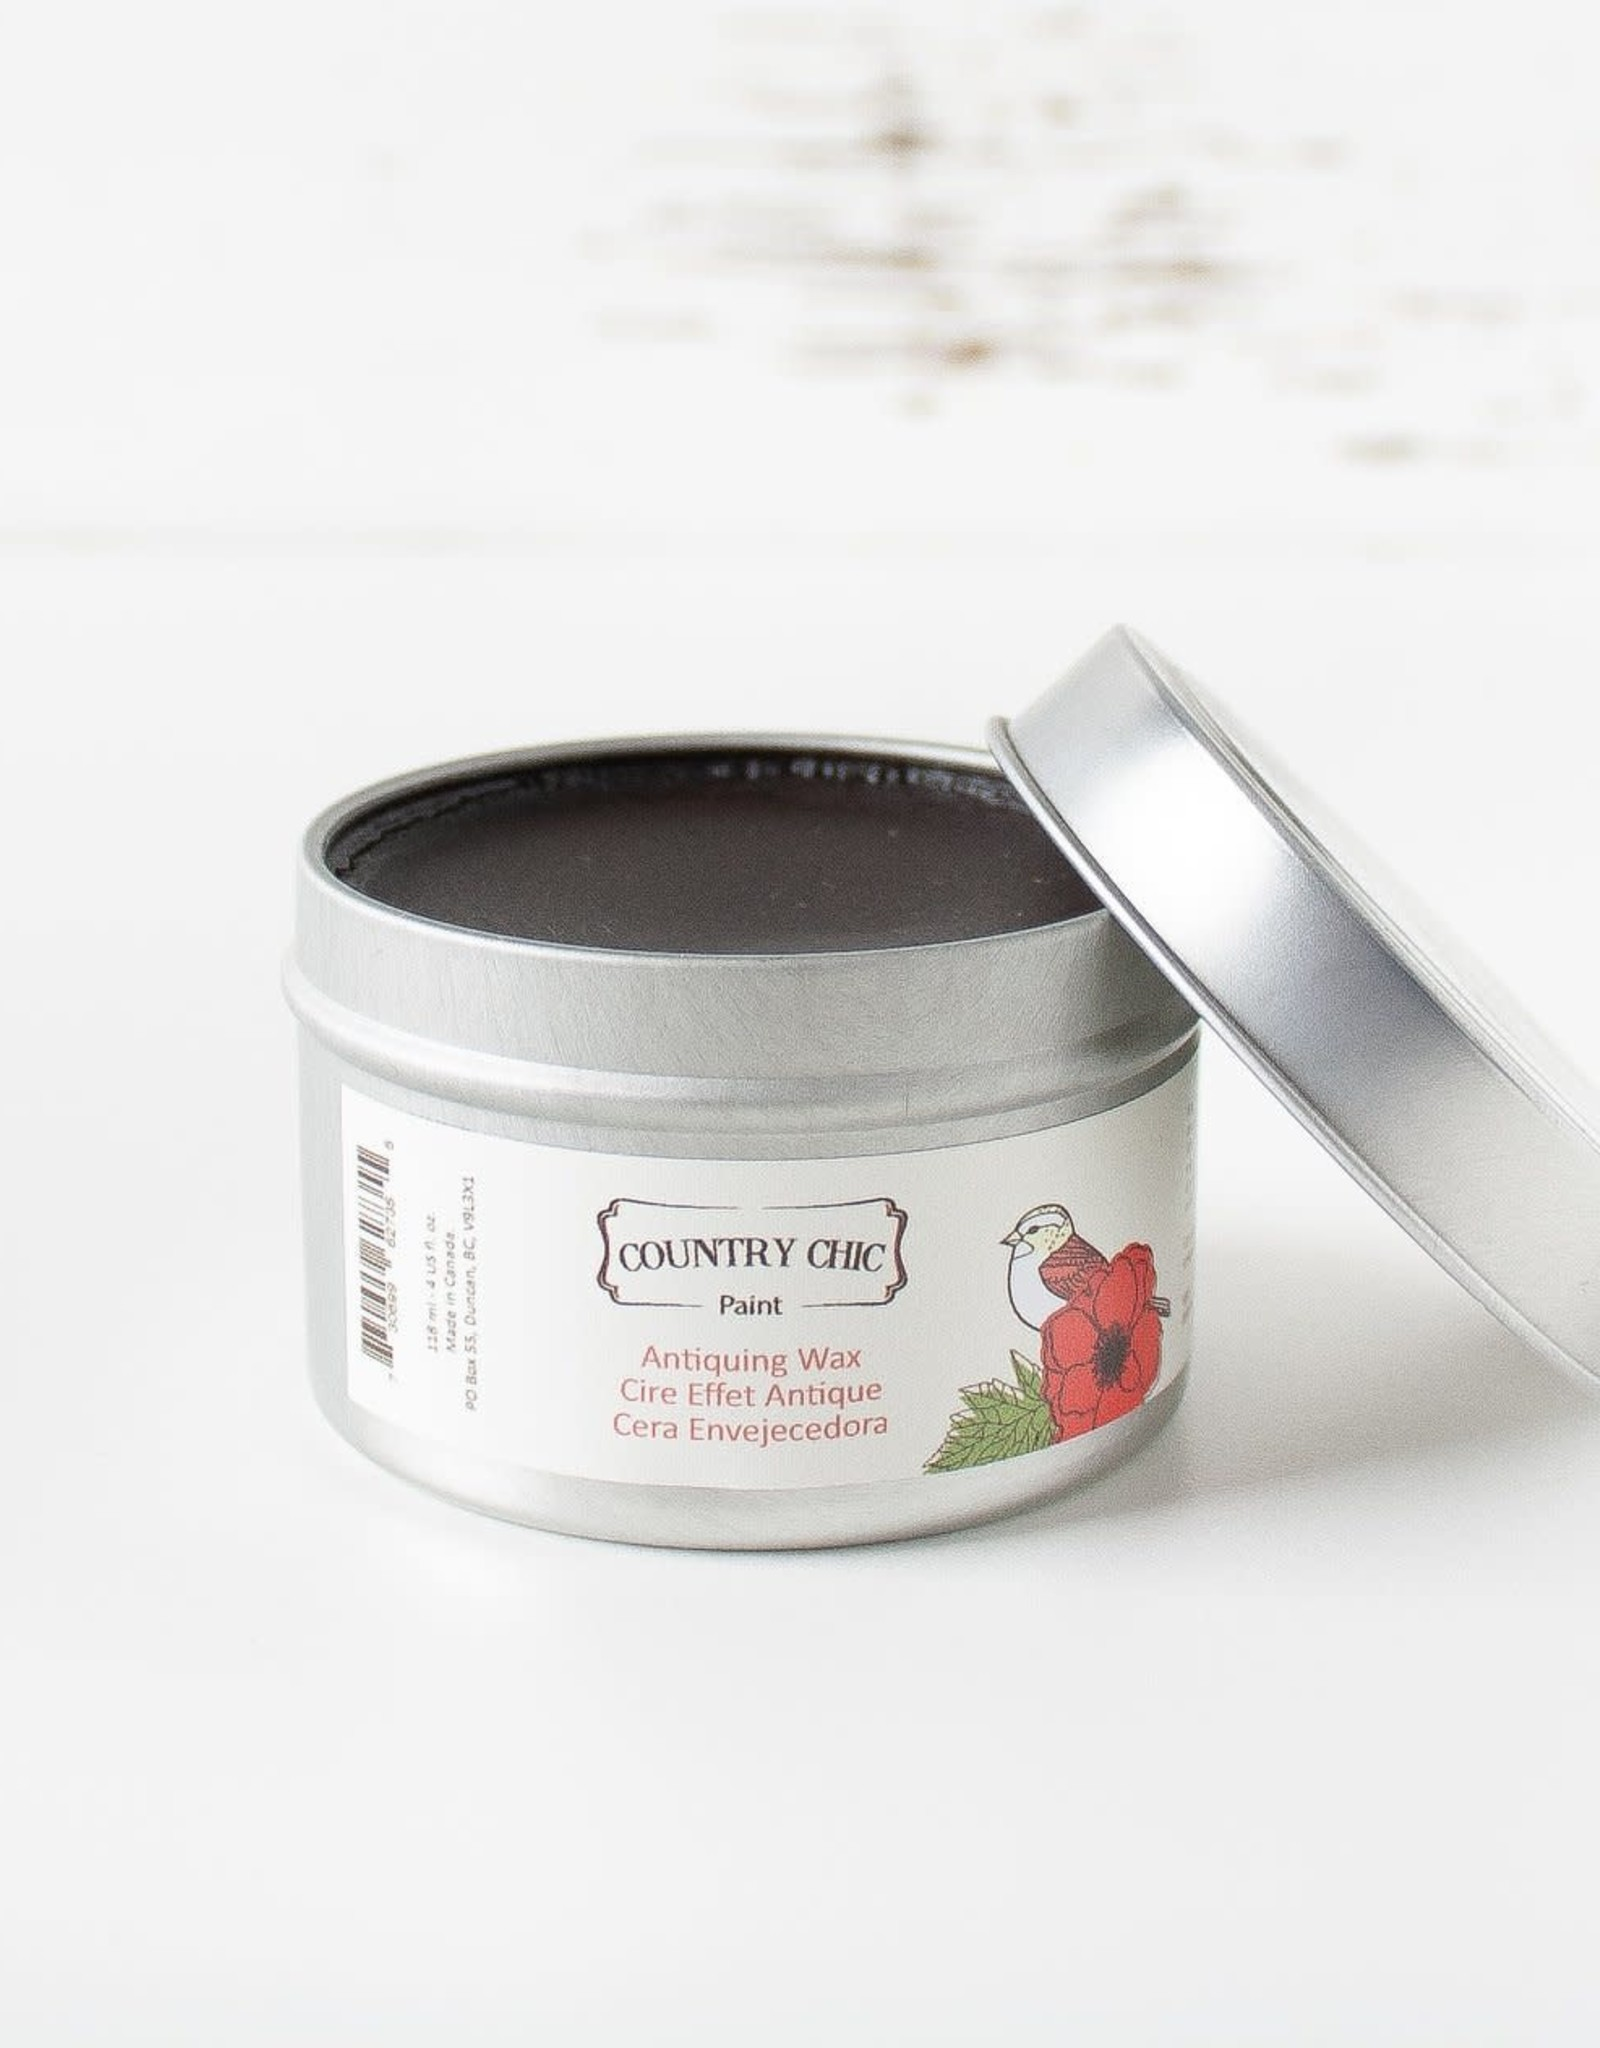 Country Chic Country Chic Antiquing Wax 4oz